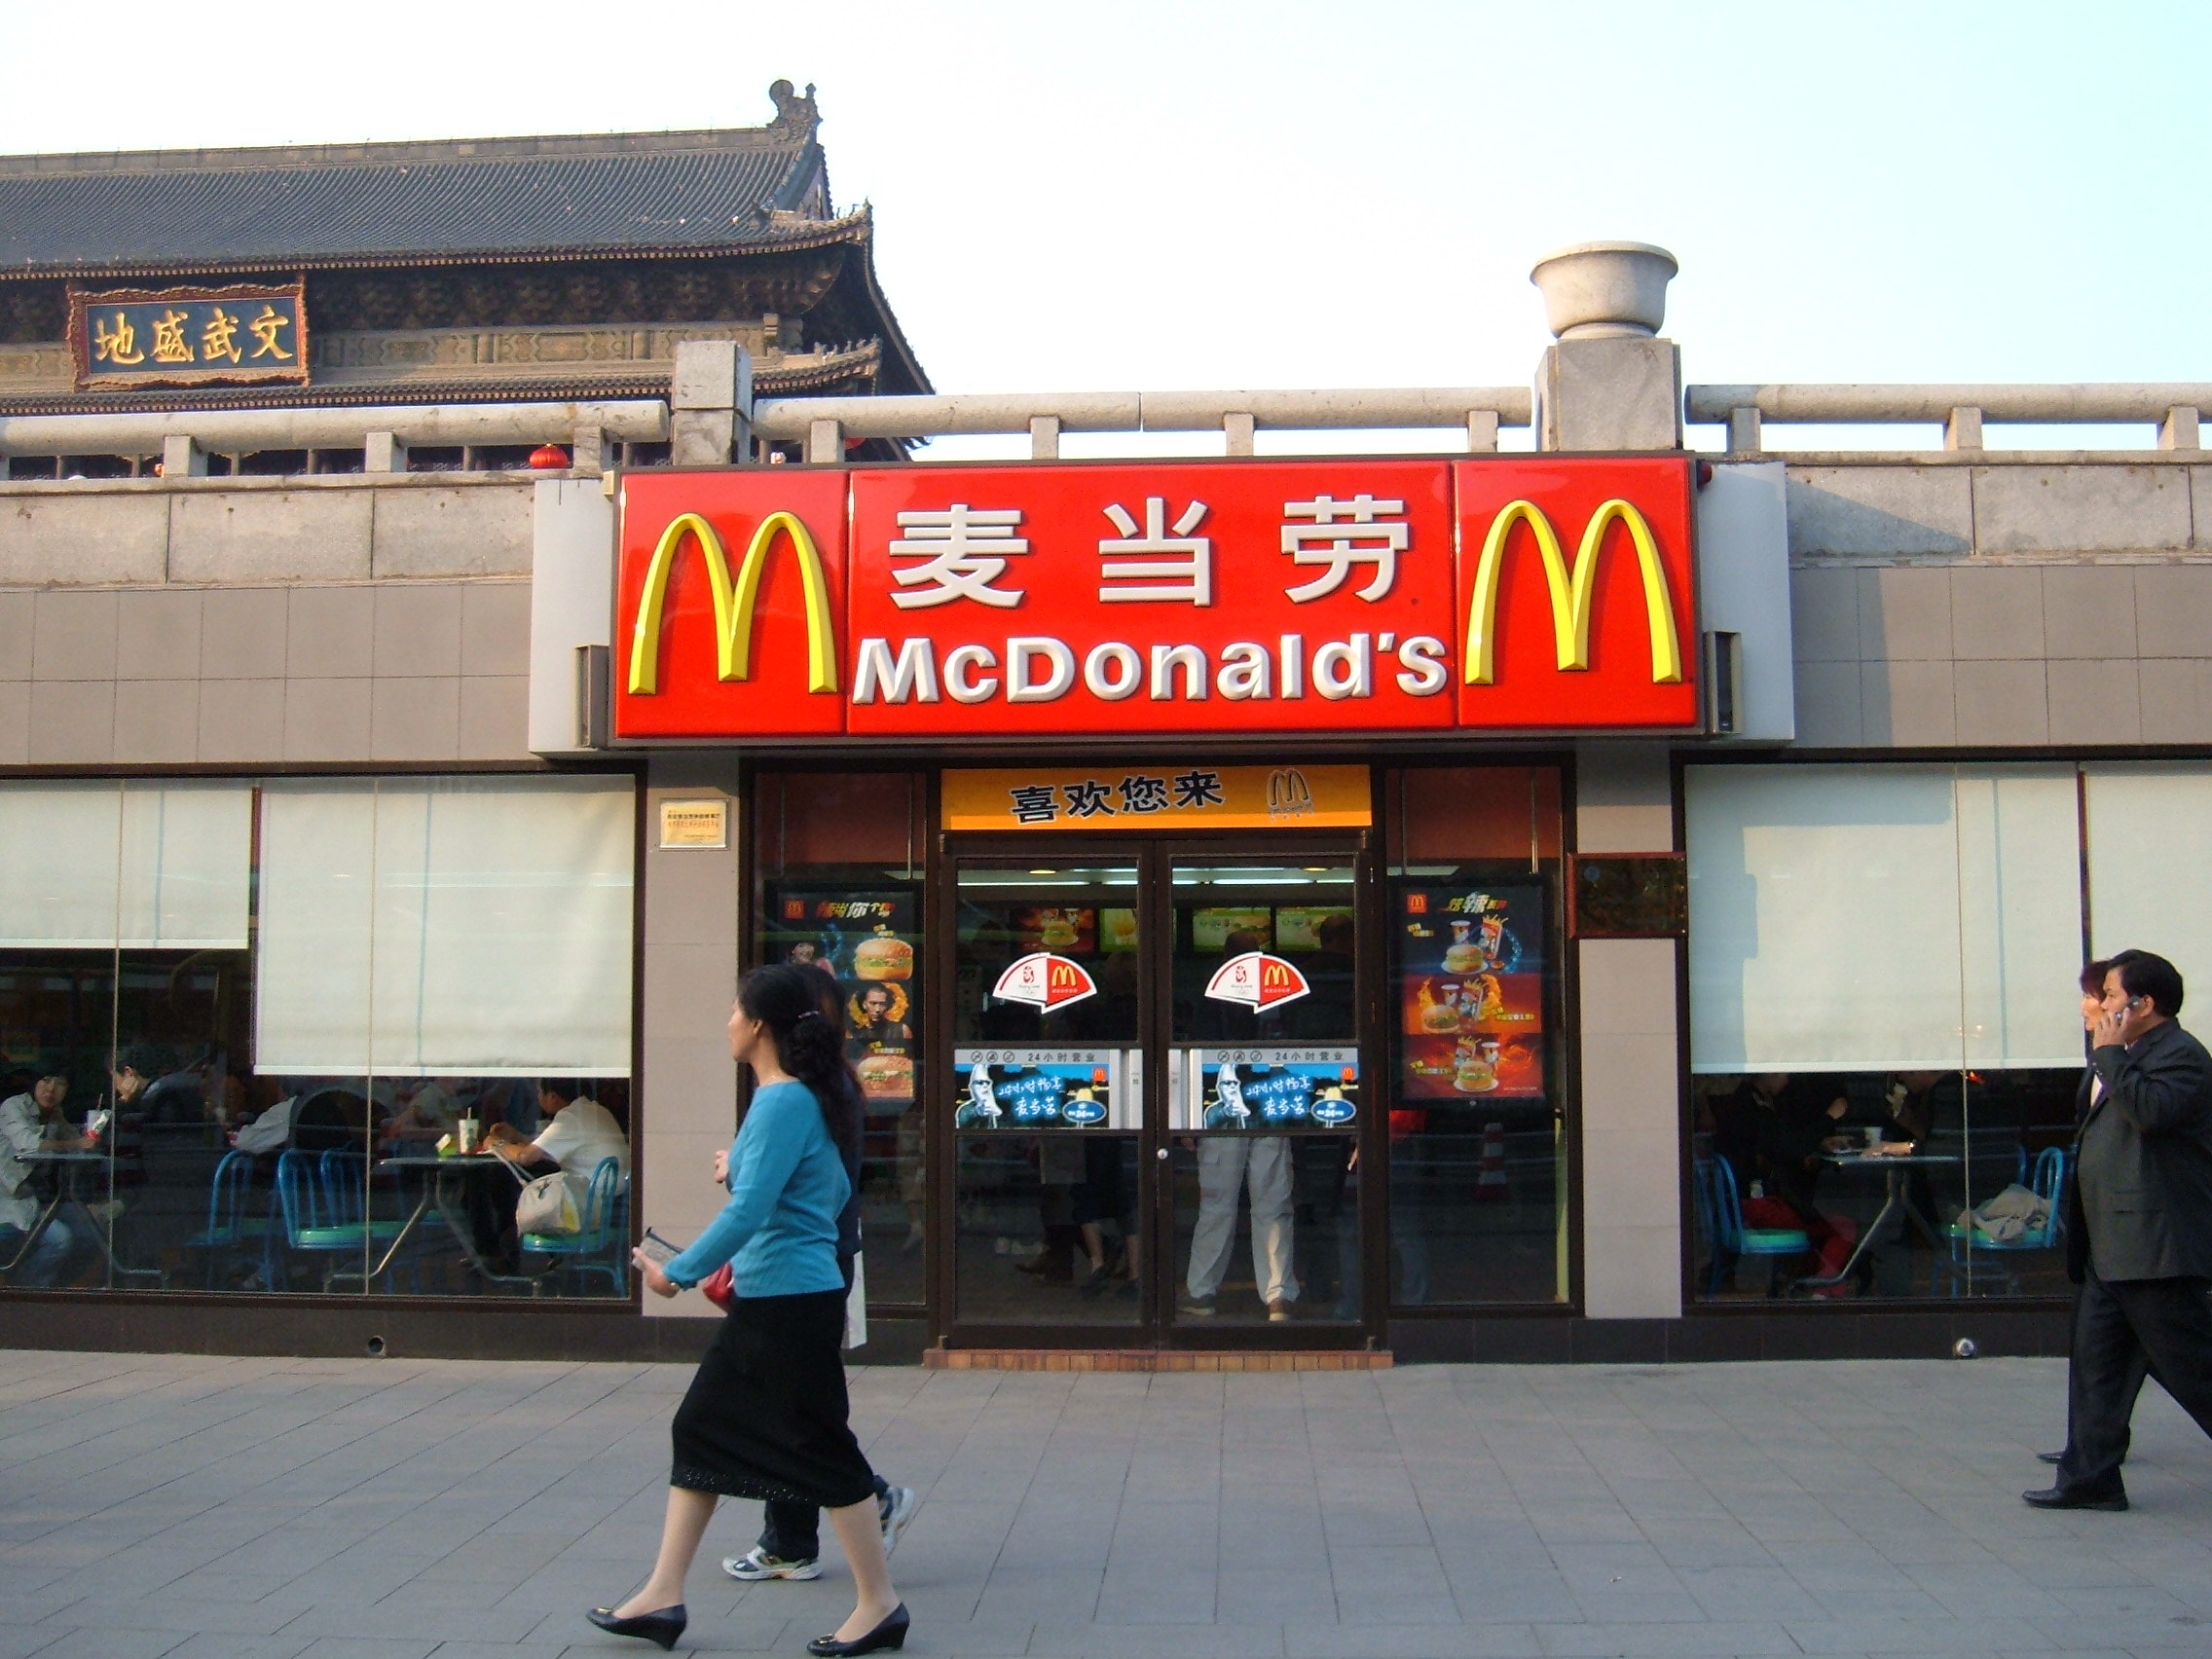 Xi'an_McDonald's_near_Drum_Tower.JPG